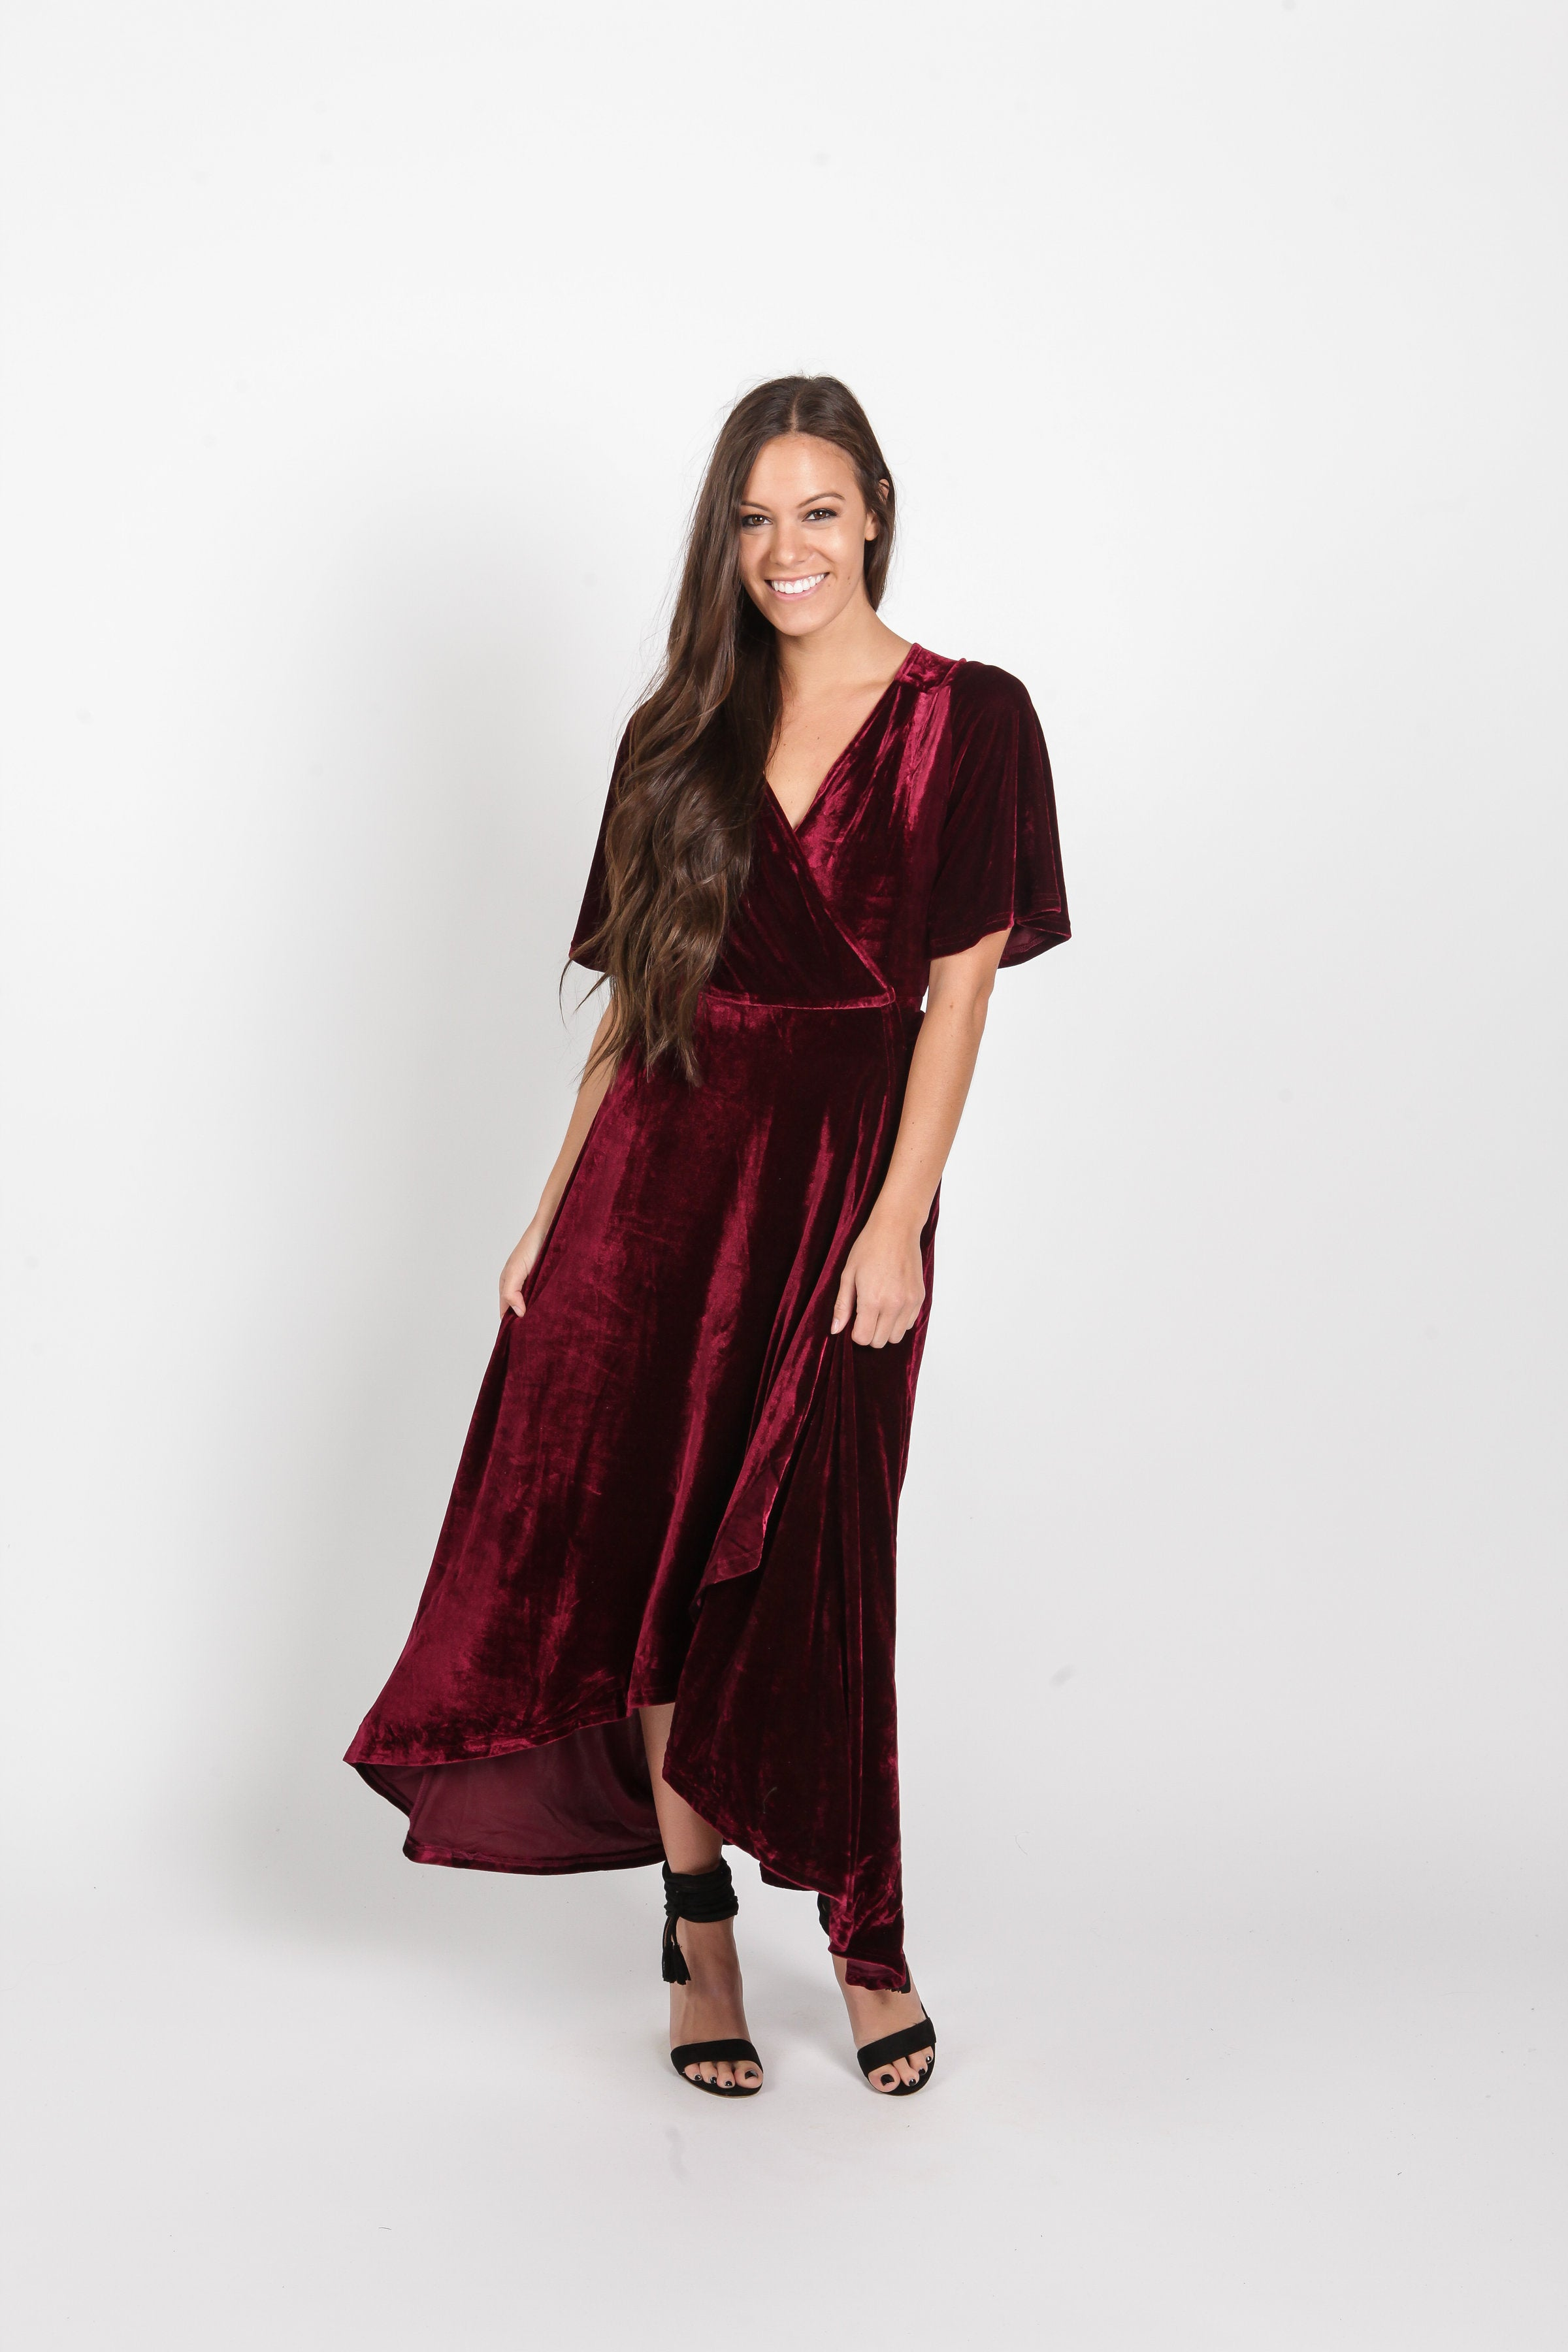 Adeline Velvet Maxi Dress - Wine